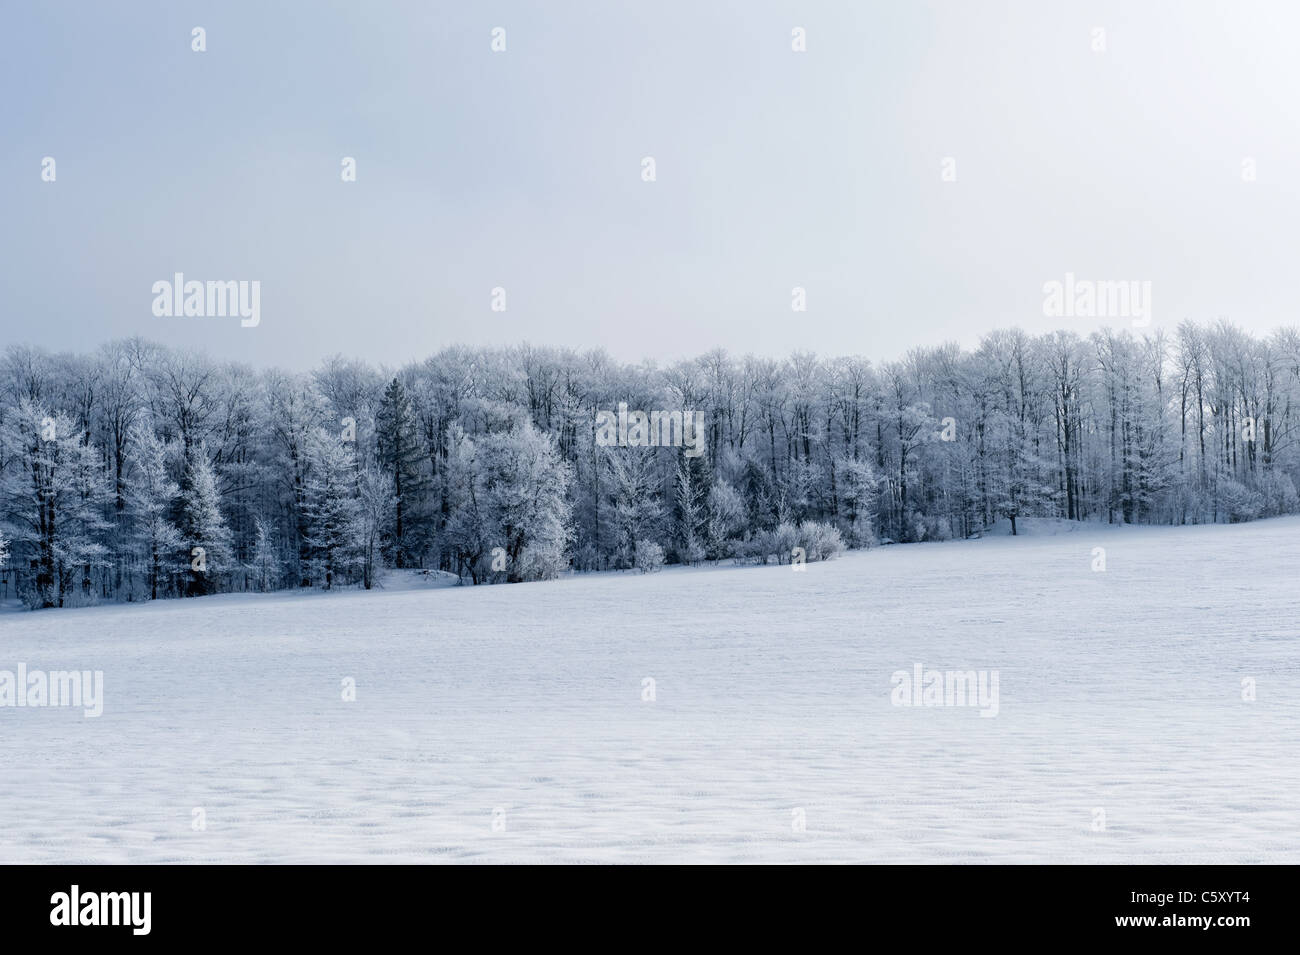 canadian winter landscape with snowy trees in the background - Stock Image